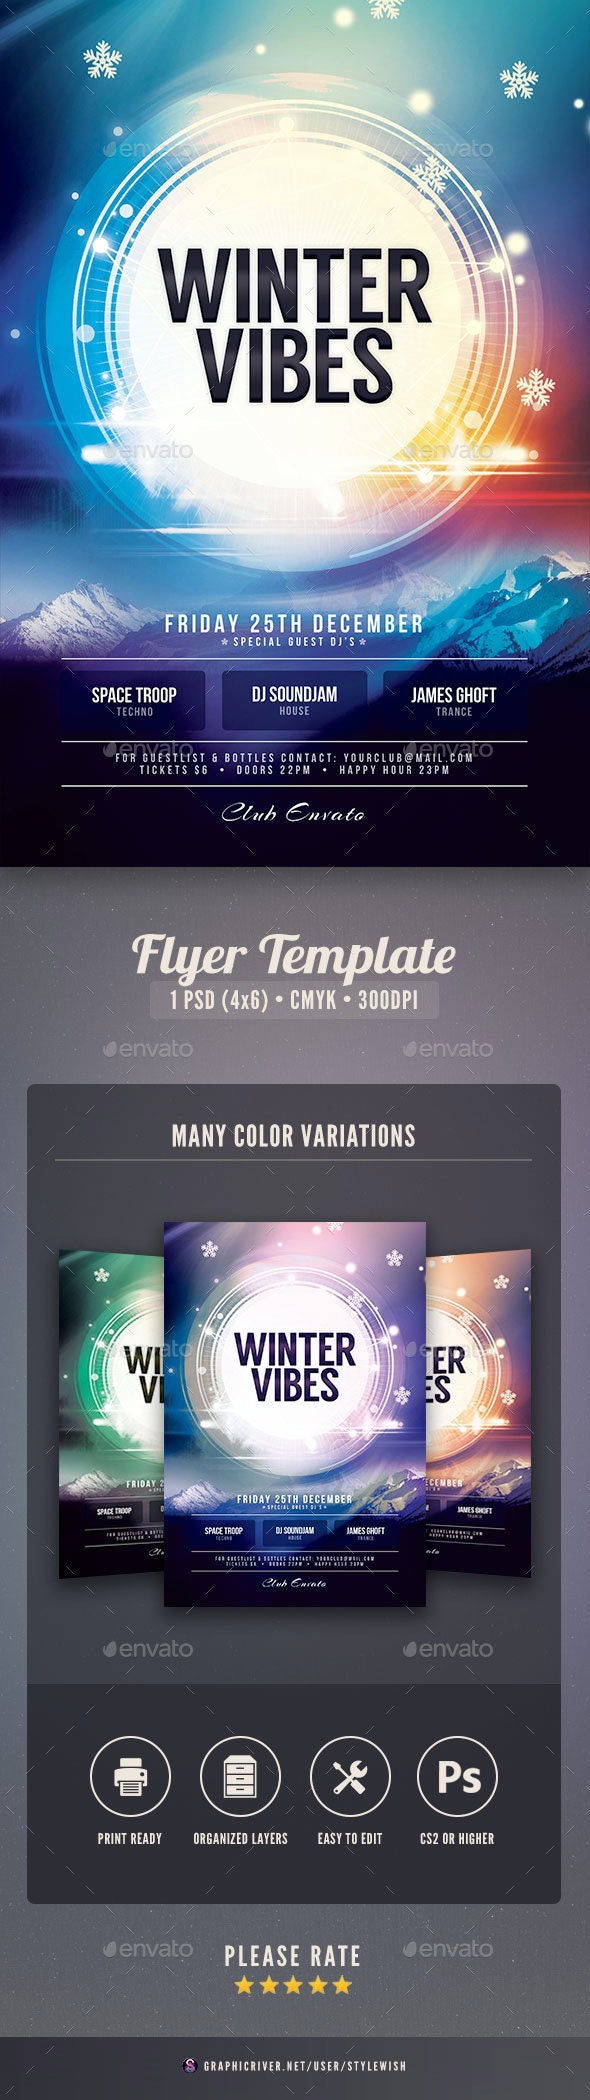 Winter Vibes Flyer - Clubs & Parties Events